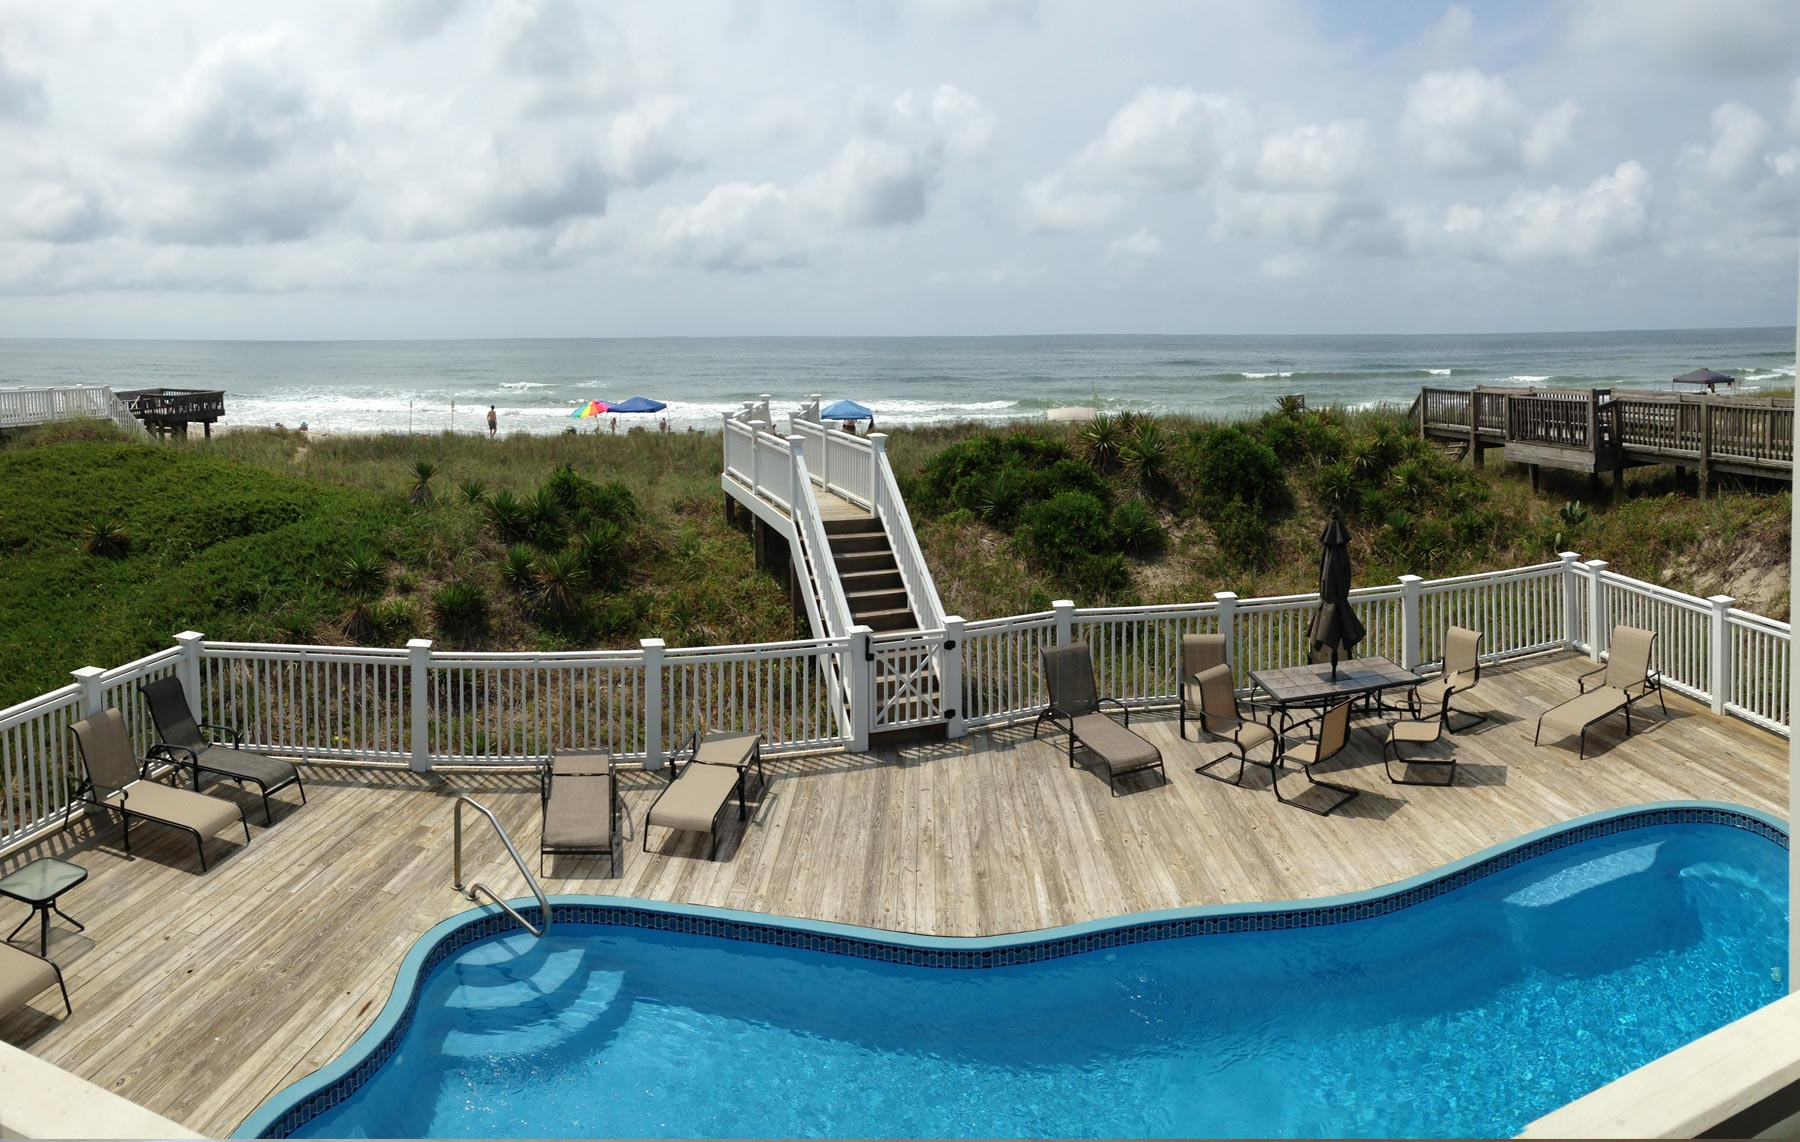 An oceanside pool is a big asset for coastal rental homes.